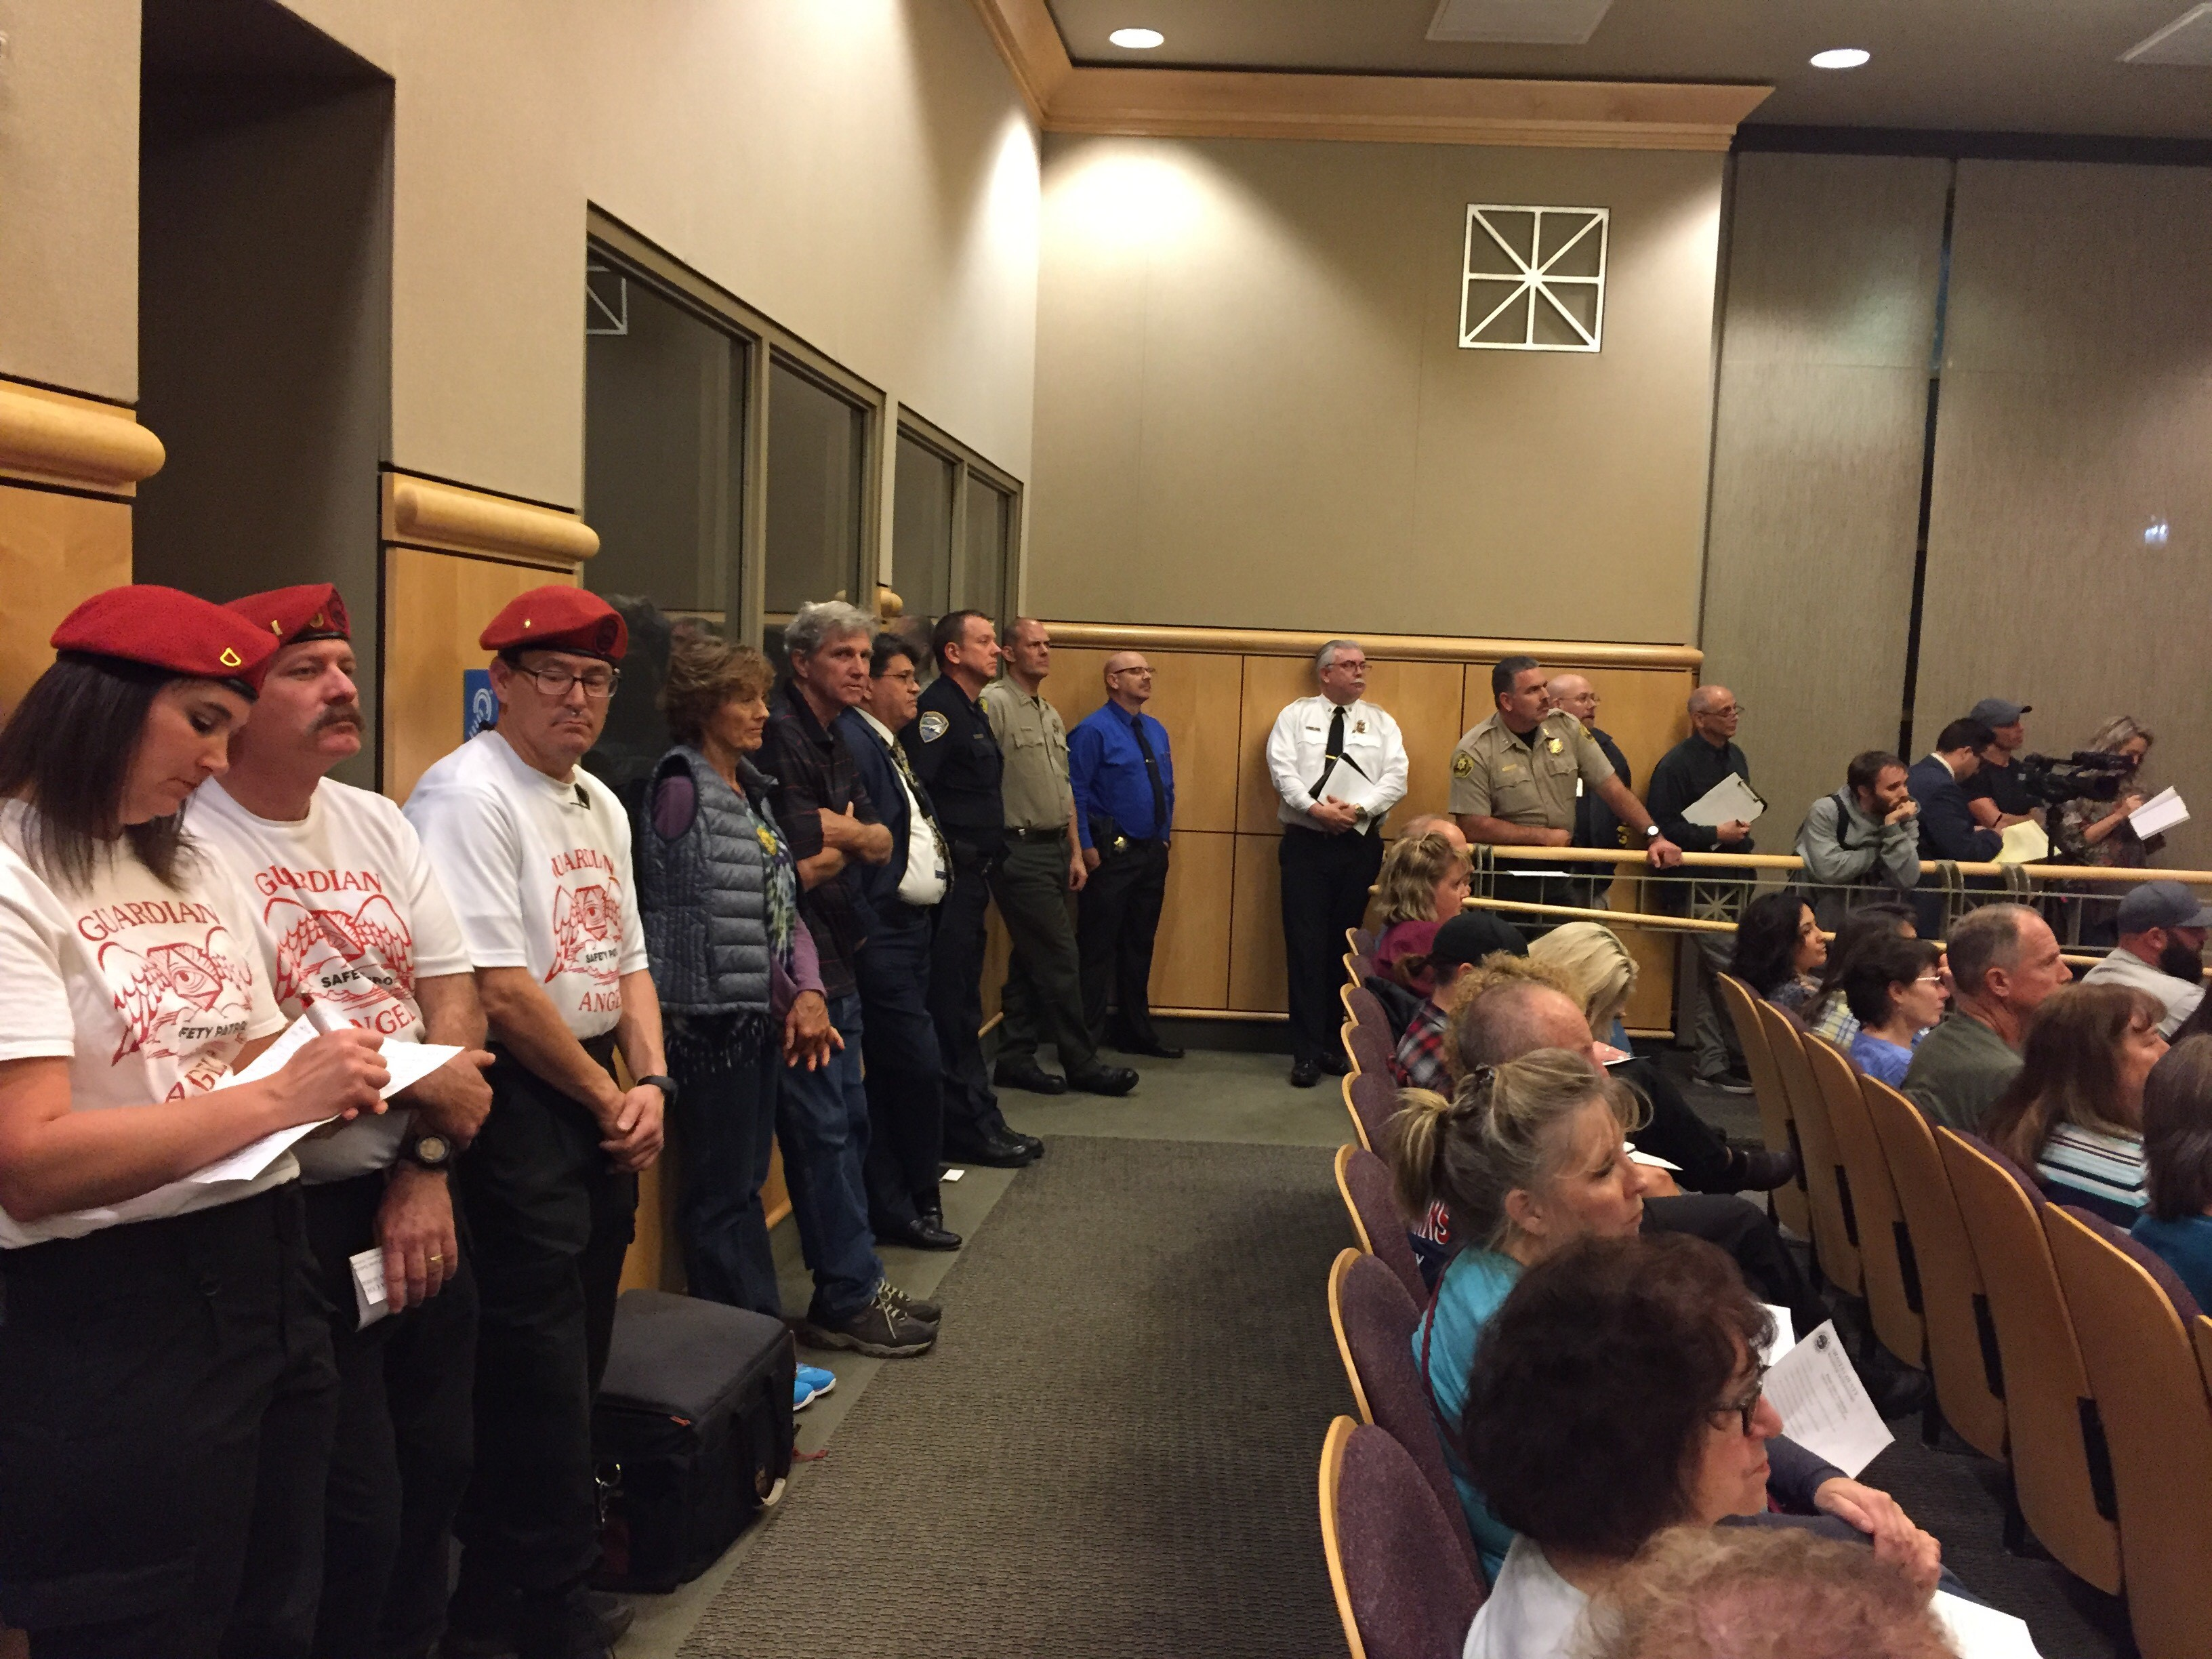 Members of the local Guardian Angels, as well as law enforcement officers and citizens, listen to discussion at the Public Safety Workshop in Redding. The first of several planned workshops was hosted by the Shasta County Board of Supervisors, Wednesday, February 7, 2018.